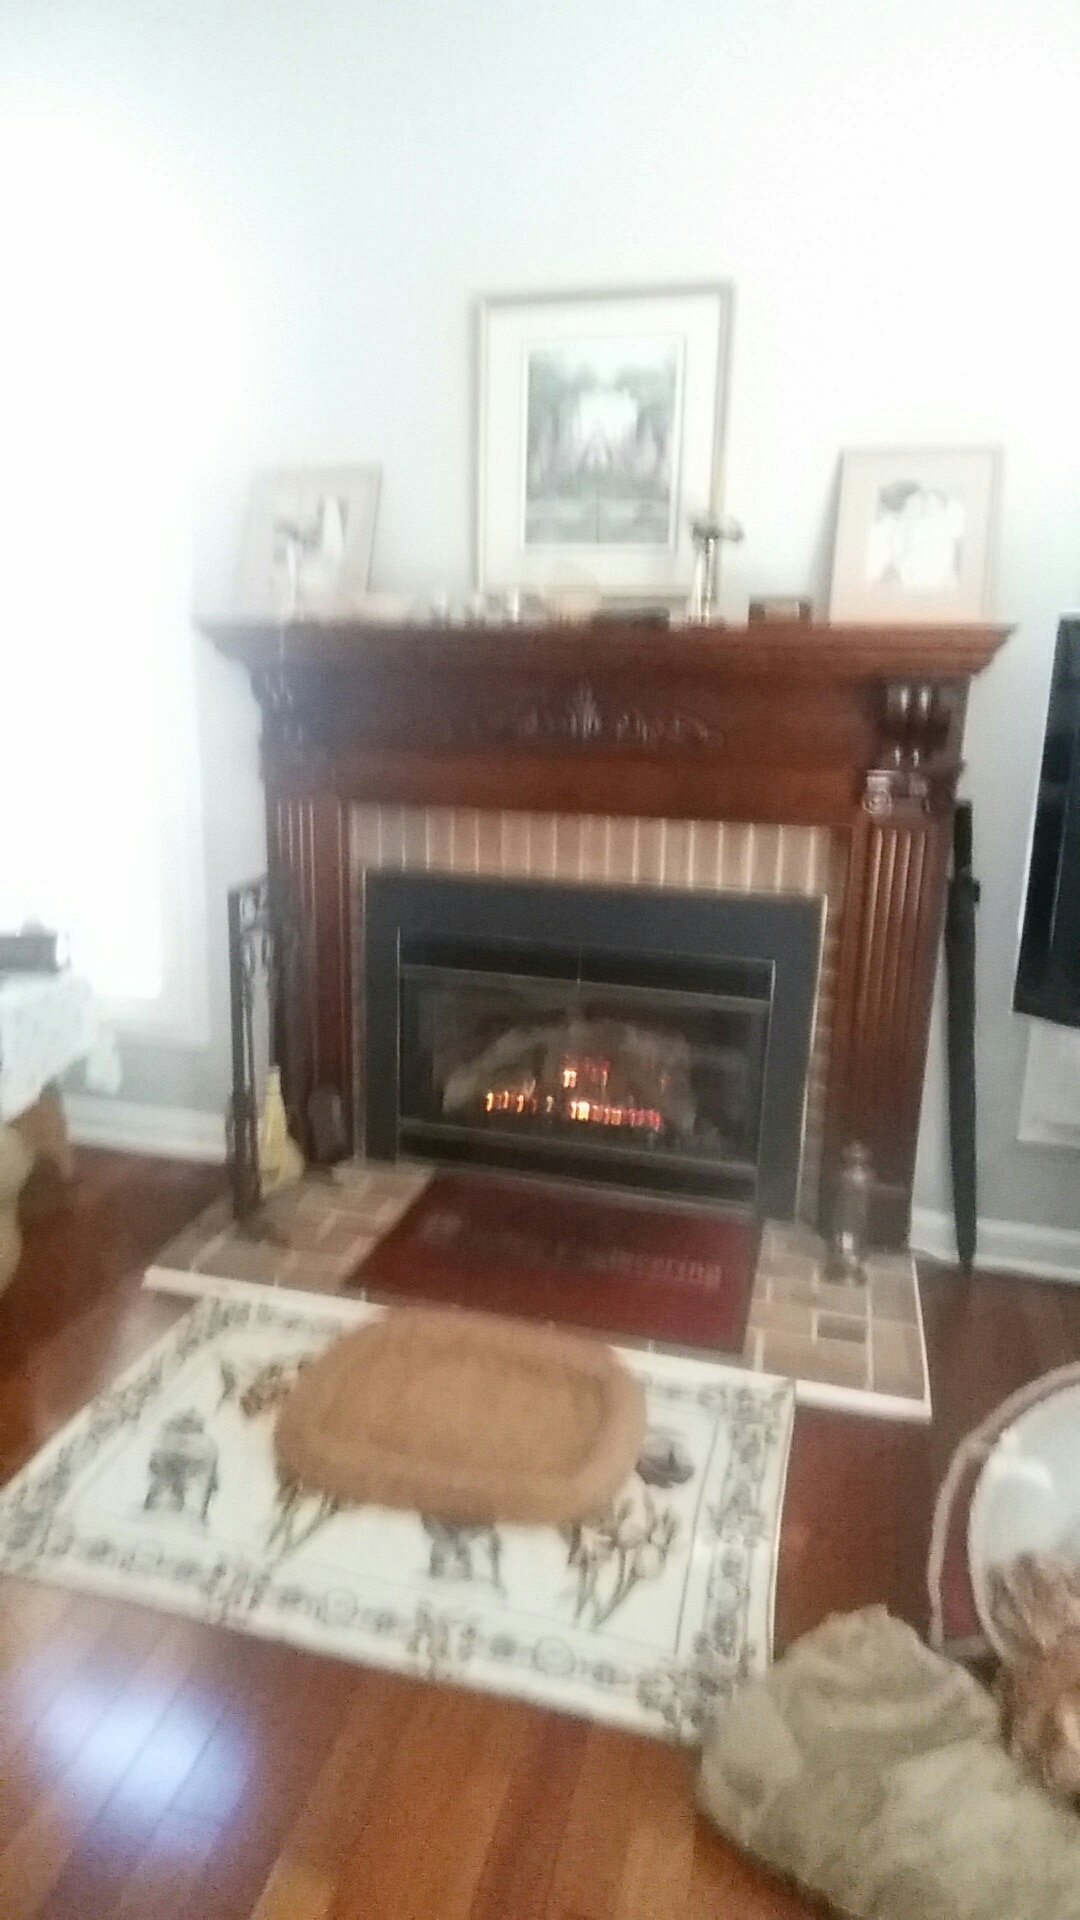 Crofton, MD - Mendota gas fireplace insert & gas logs installation repair service call Crofton Maryland 21114